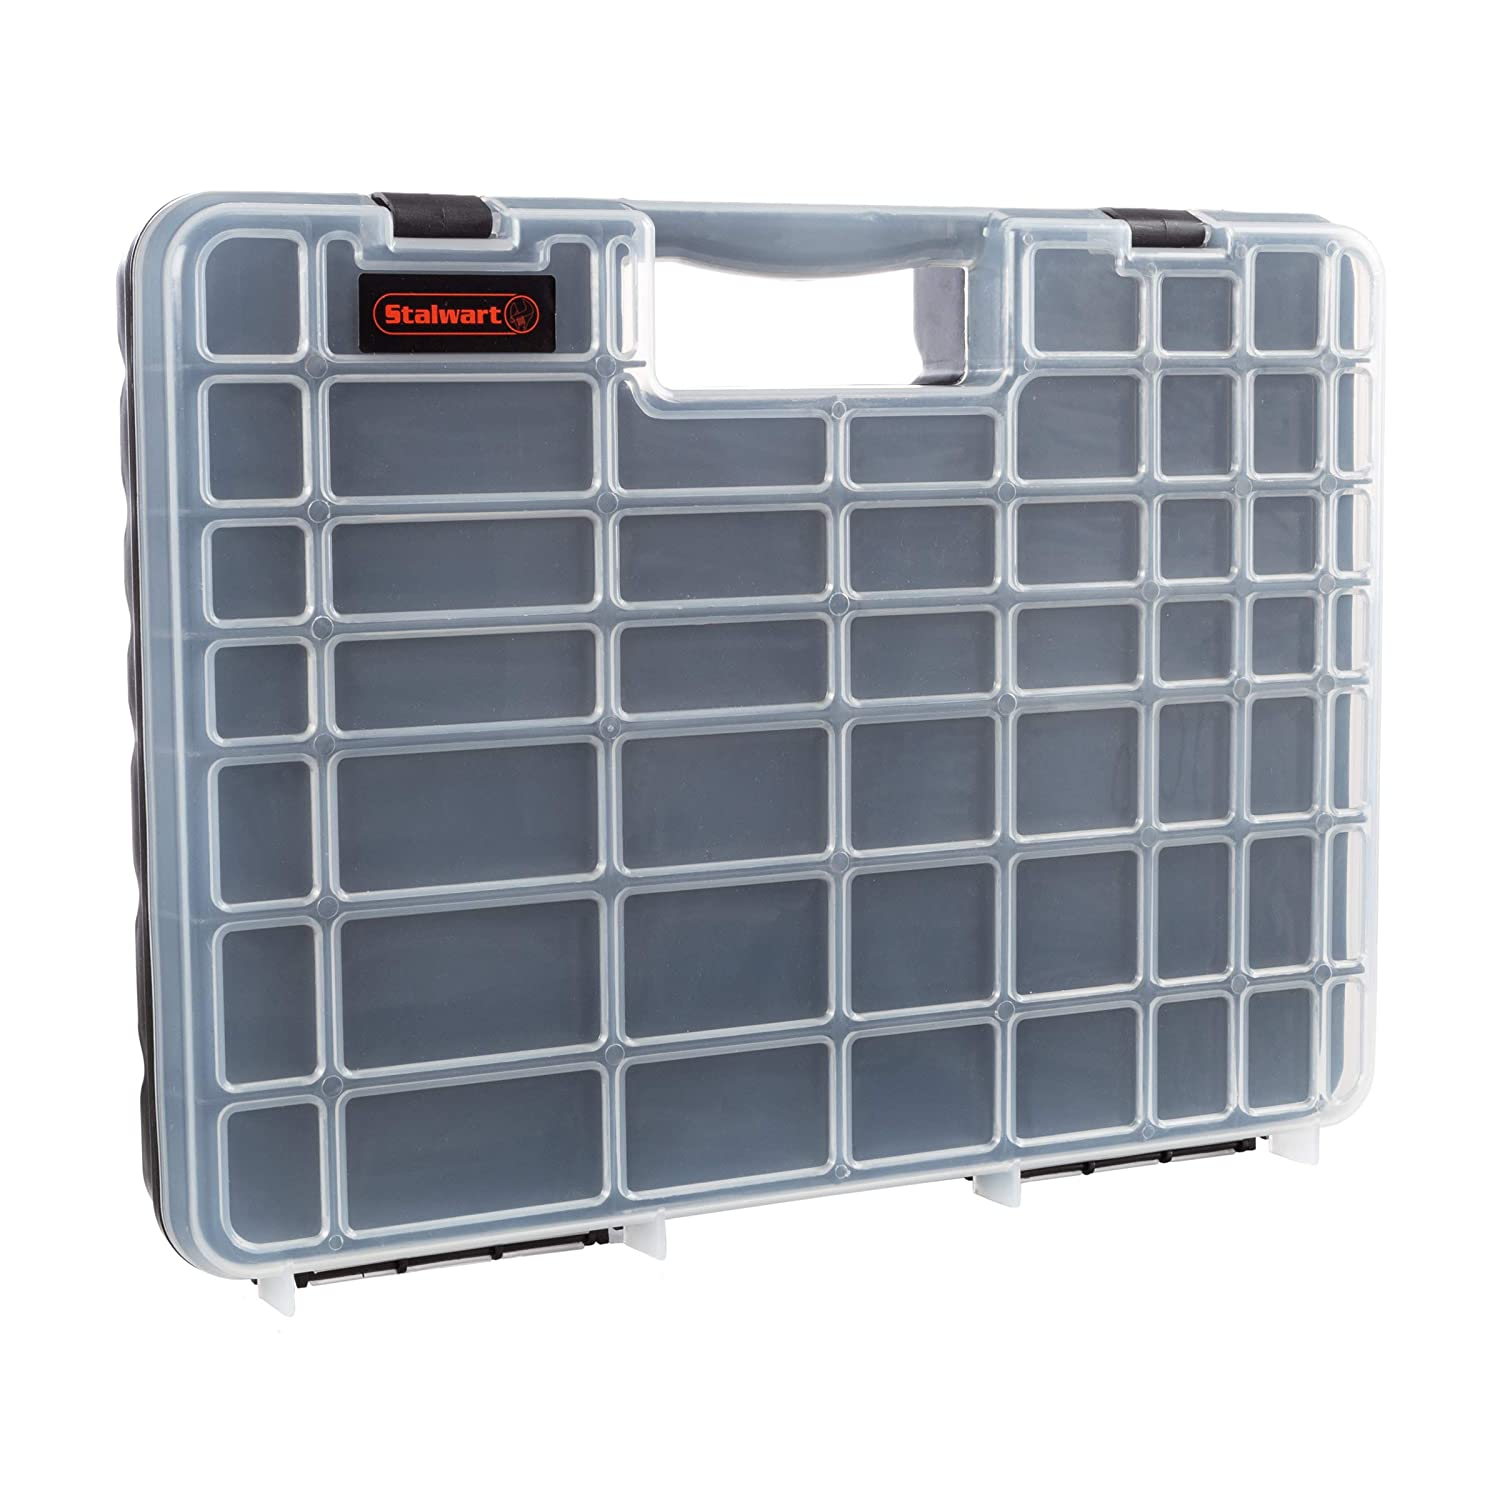 Portable Storage Case with Secure Locks and 55 Small Bin Compartments for Hardware Screws Bolts Nuts Nails Beads Jewelry and More by Stalwart